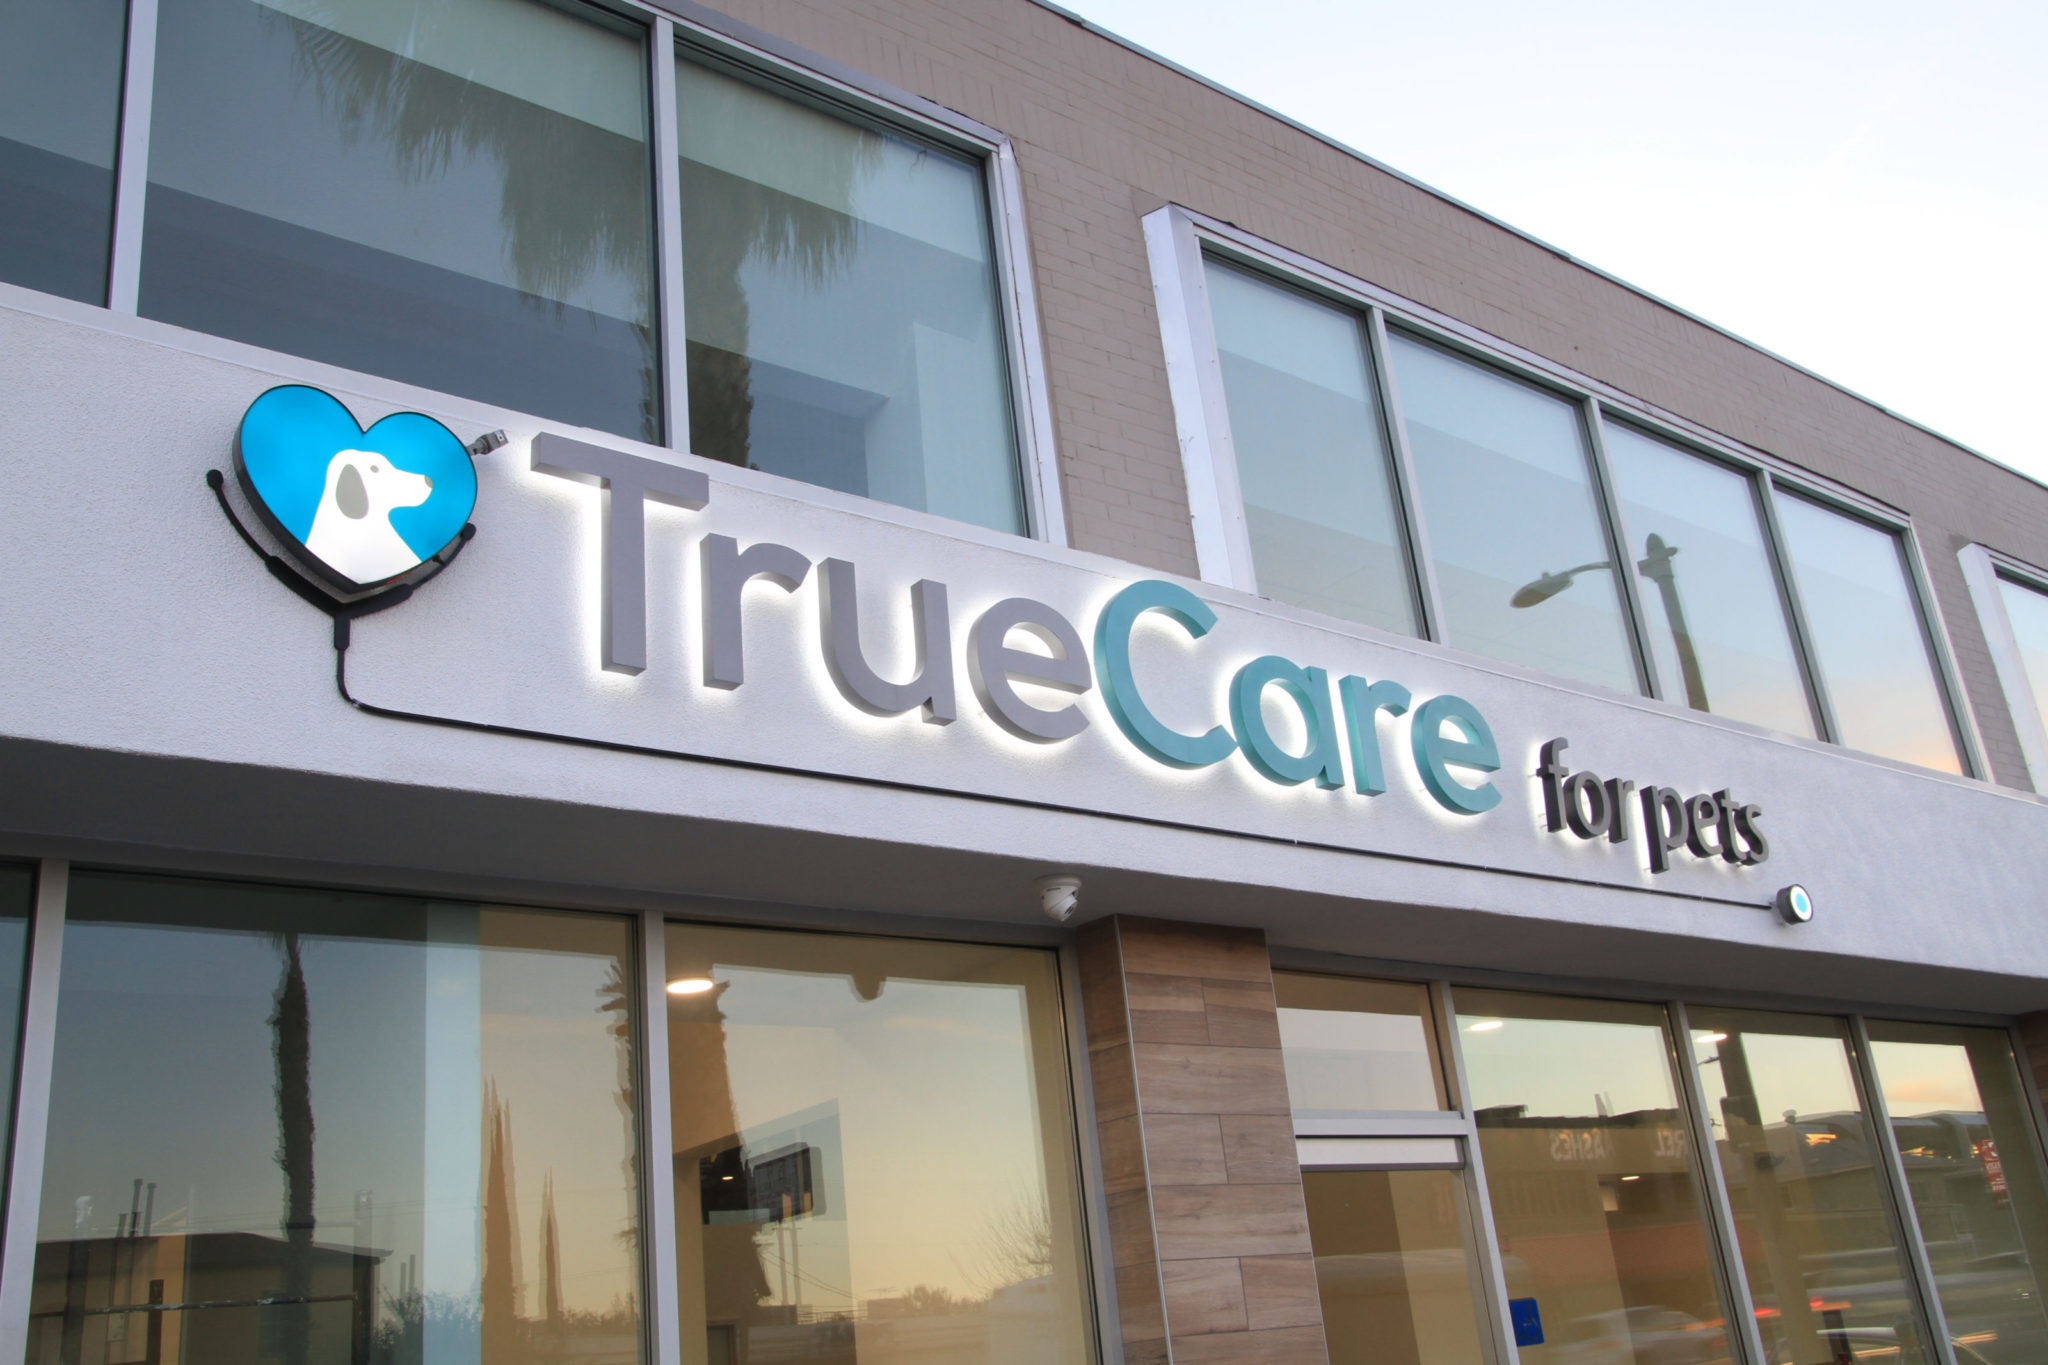 Home True Care For Pets